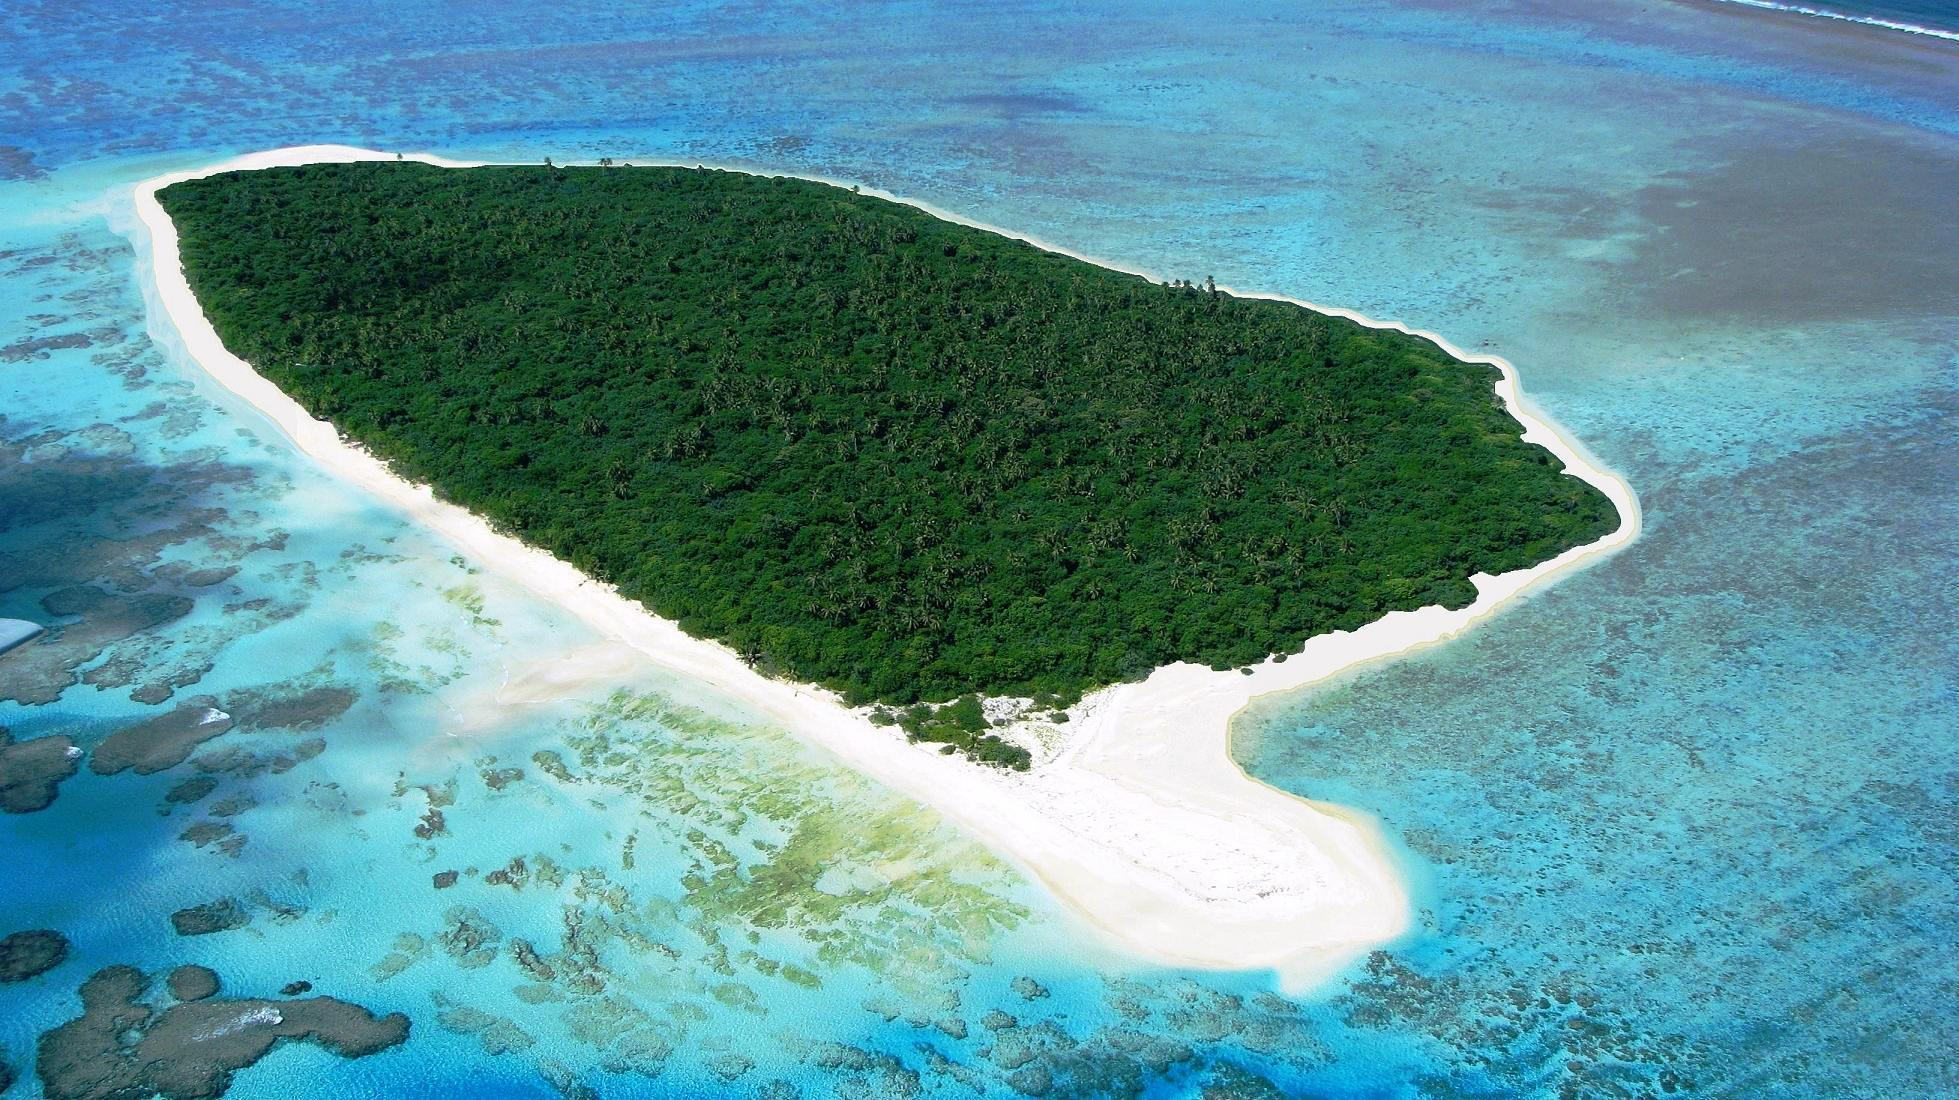 Acreage For Sale By Owner >> Nukanamo Island - Tonga, South Pacific - Private Islands ...